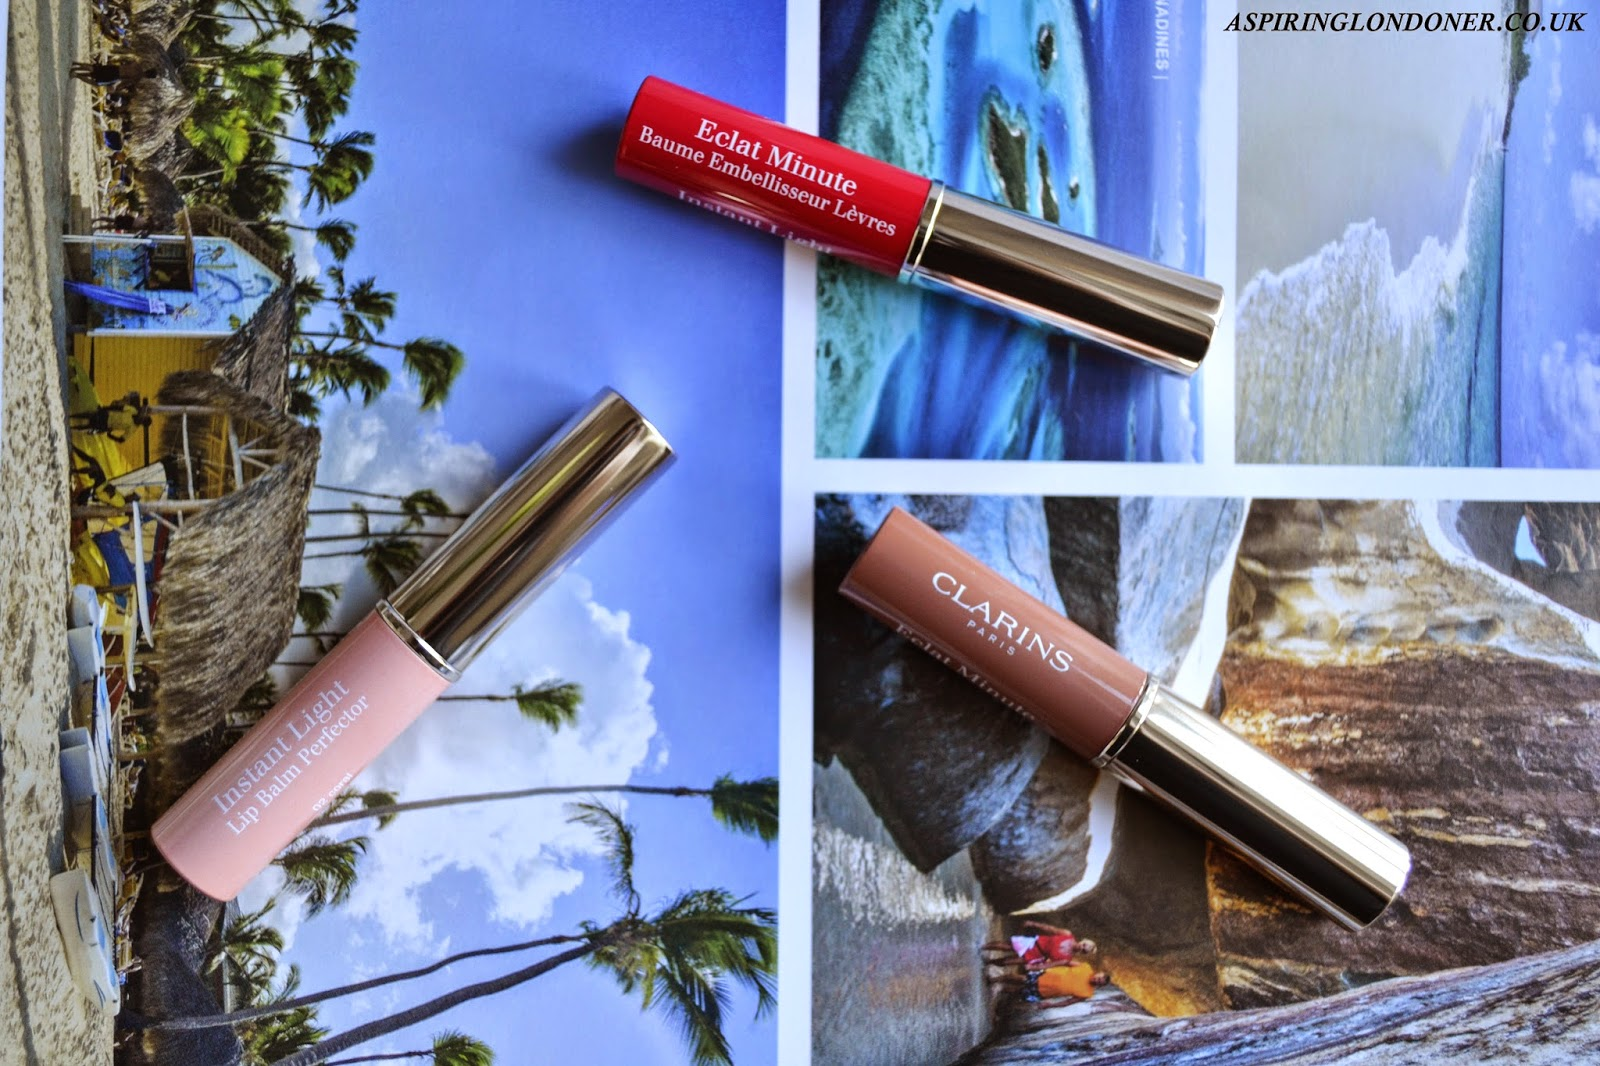 Clarins Instant Light Lip Balm Perfector Review - Aspiring Londoner